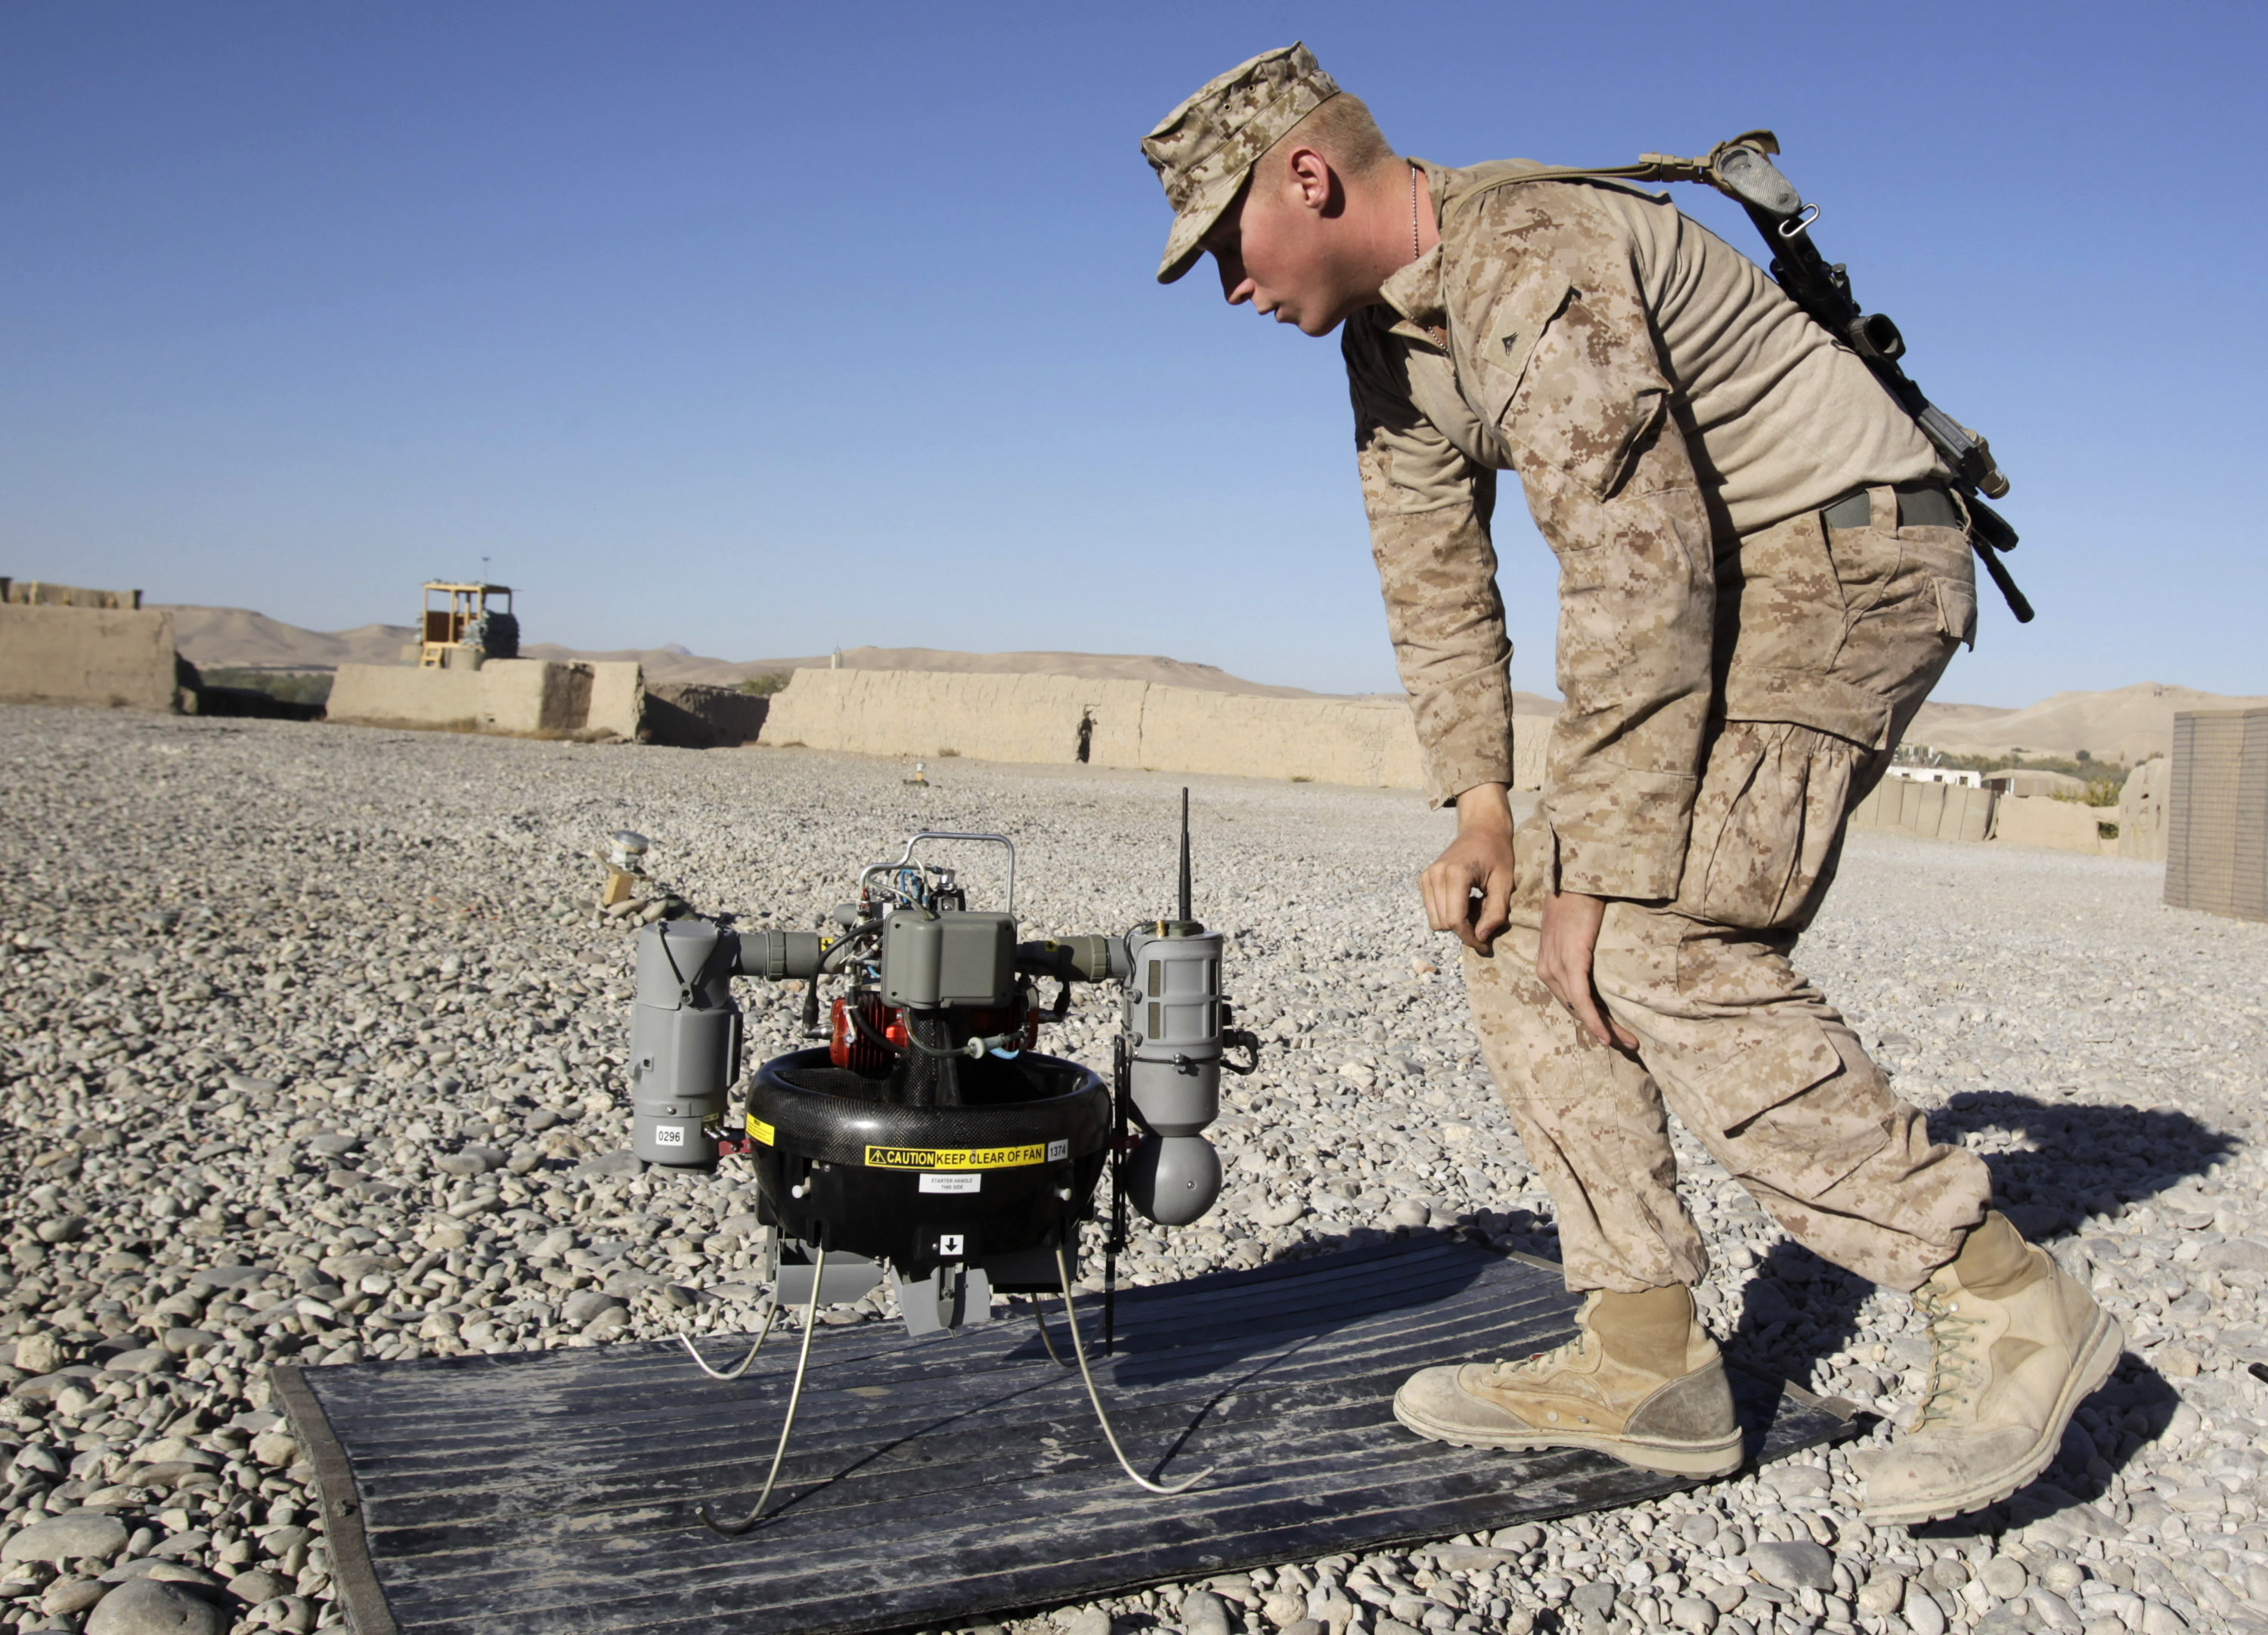 Why Drones Work The Case For Washingtons Weapon Of Choice